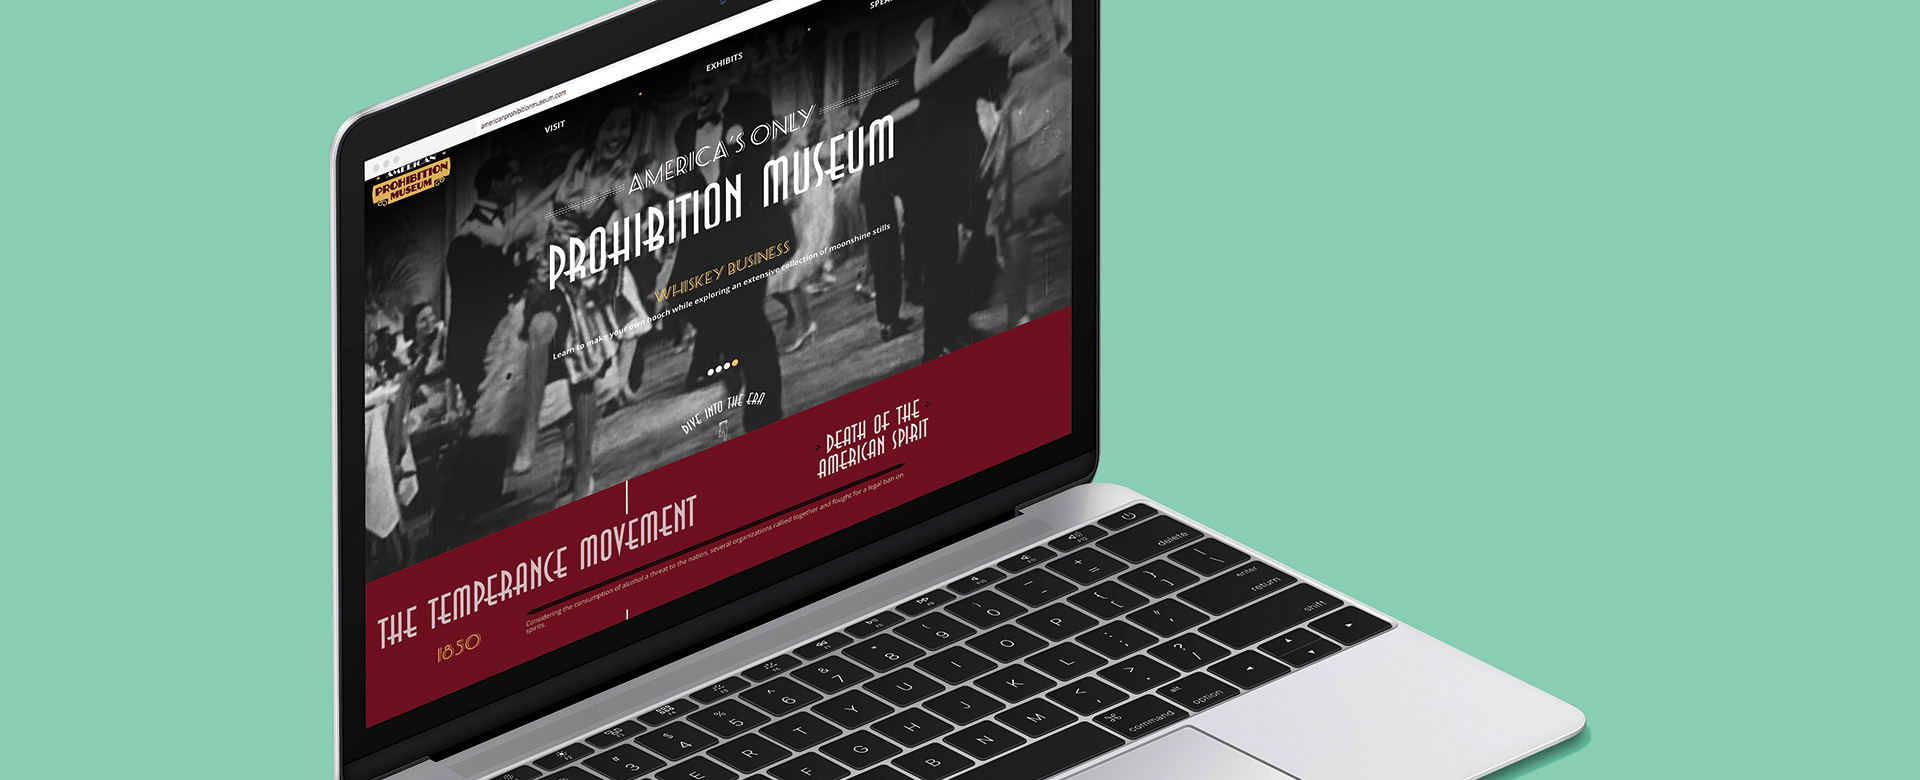 prohibition museum savannah responsive website on laptop